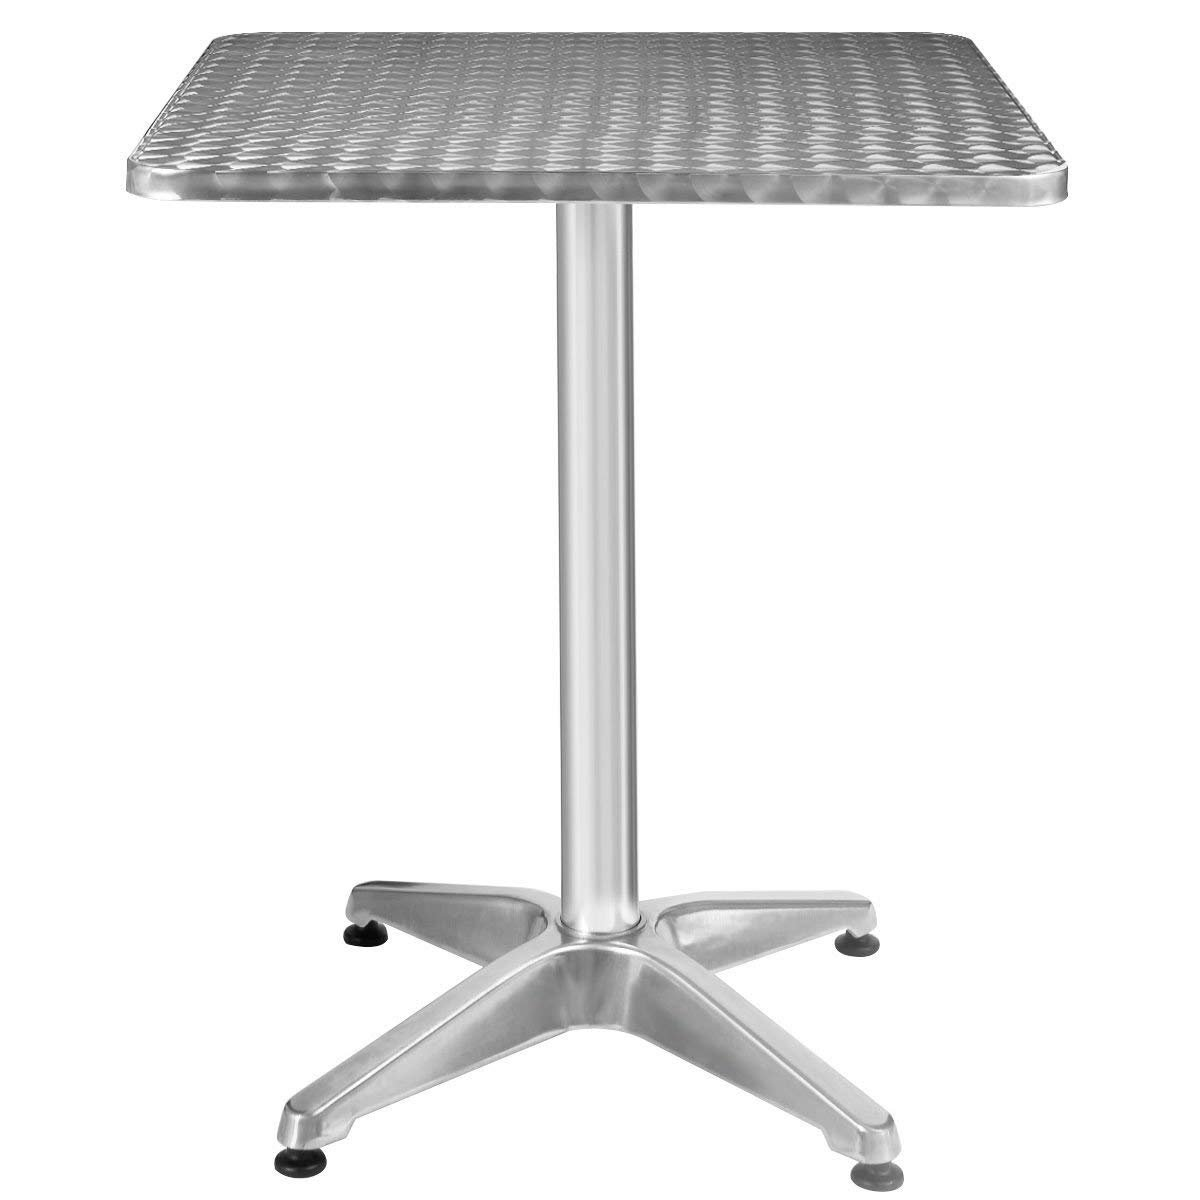 Giantex Tall Bar Table Outdoor Patio Pub Restaurant Height Adjustable Bistro Table Aluminum Stainless Steel Square Table (23.5'' Square)